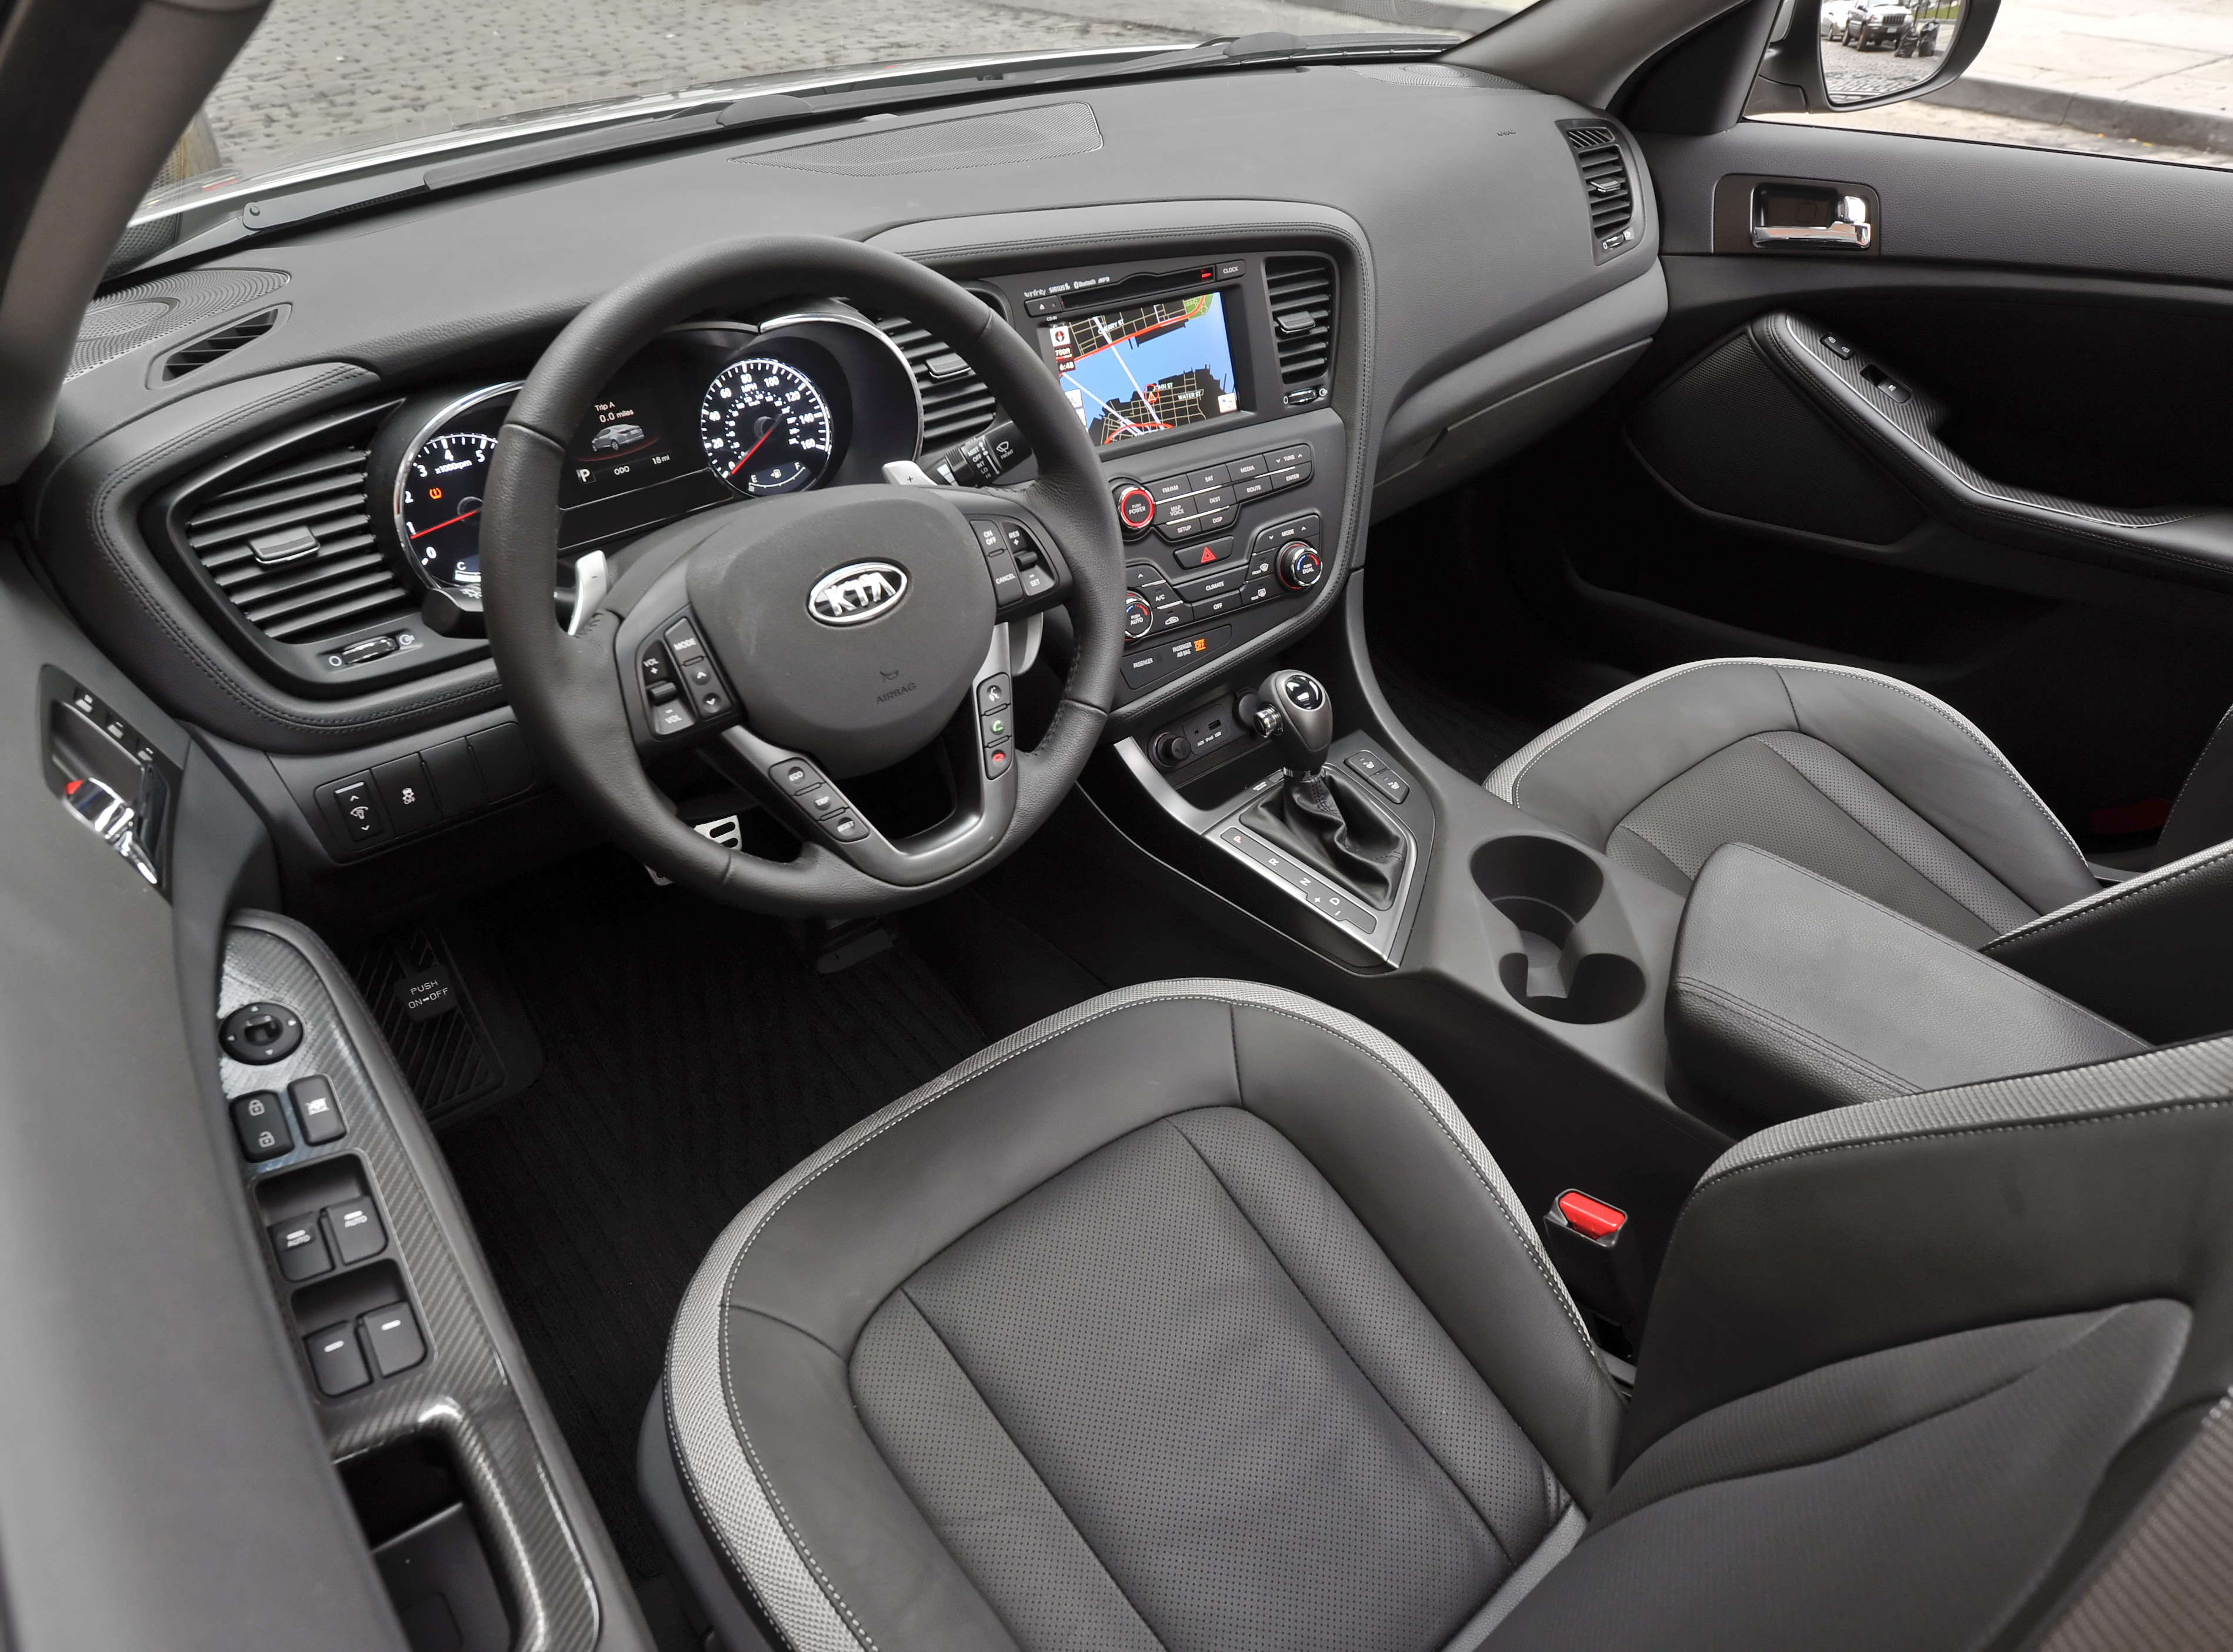 kia gdi in and was focus engineered optima ex efficiency a plug debut new with dual at hr on htm all the news phev hybrid makes global chicago